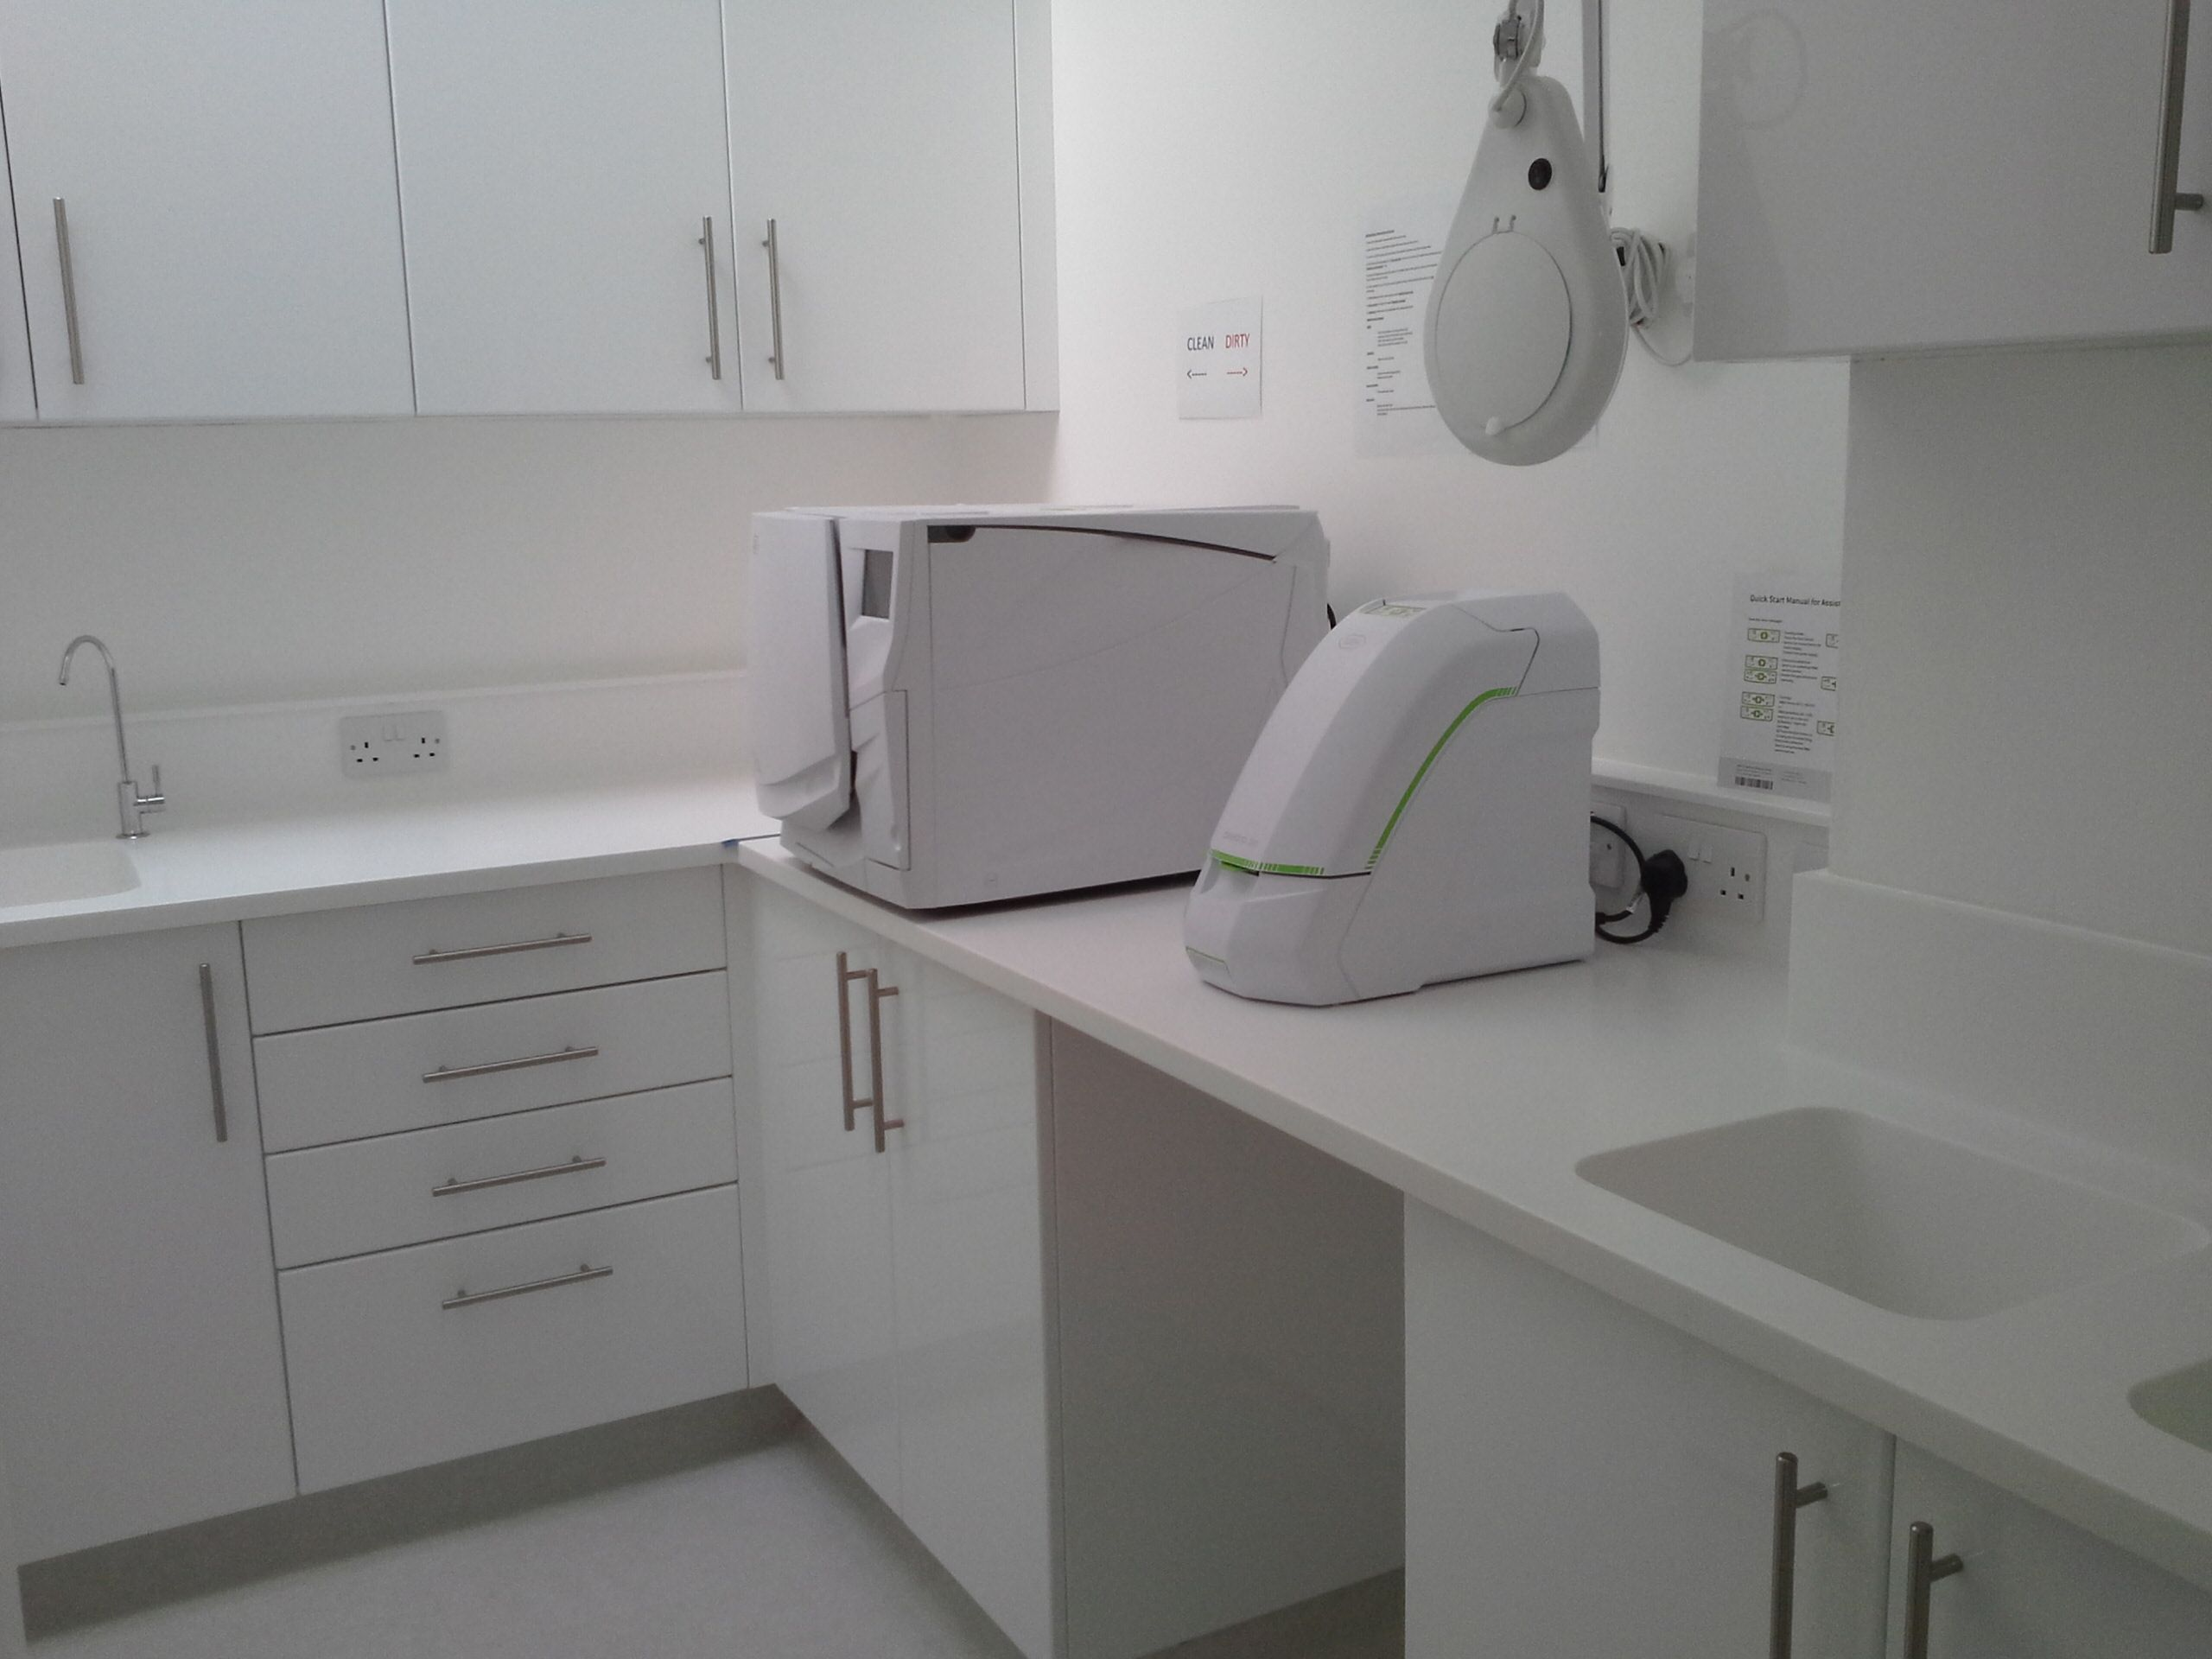 The Central Sterilization Room at K Dental Studios (116